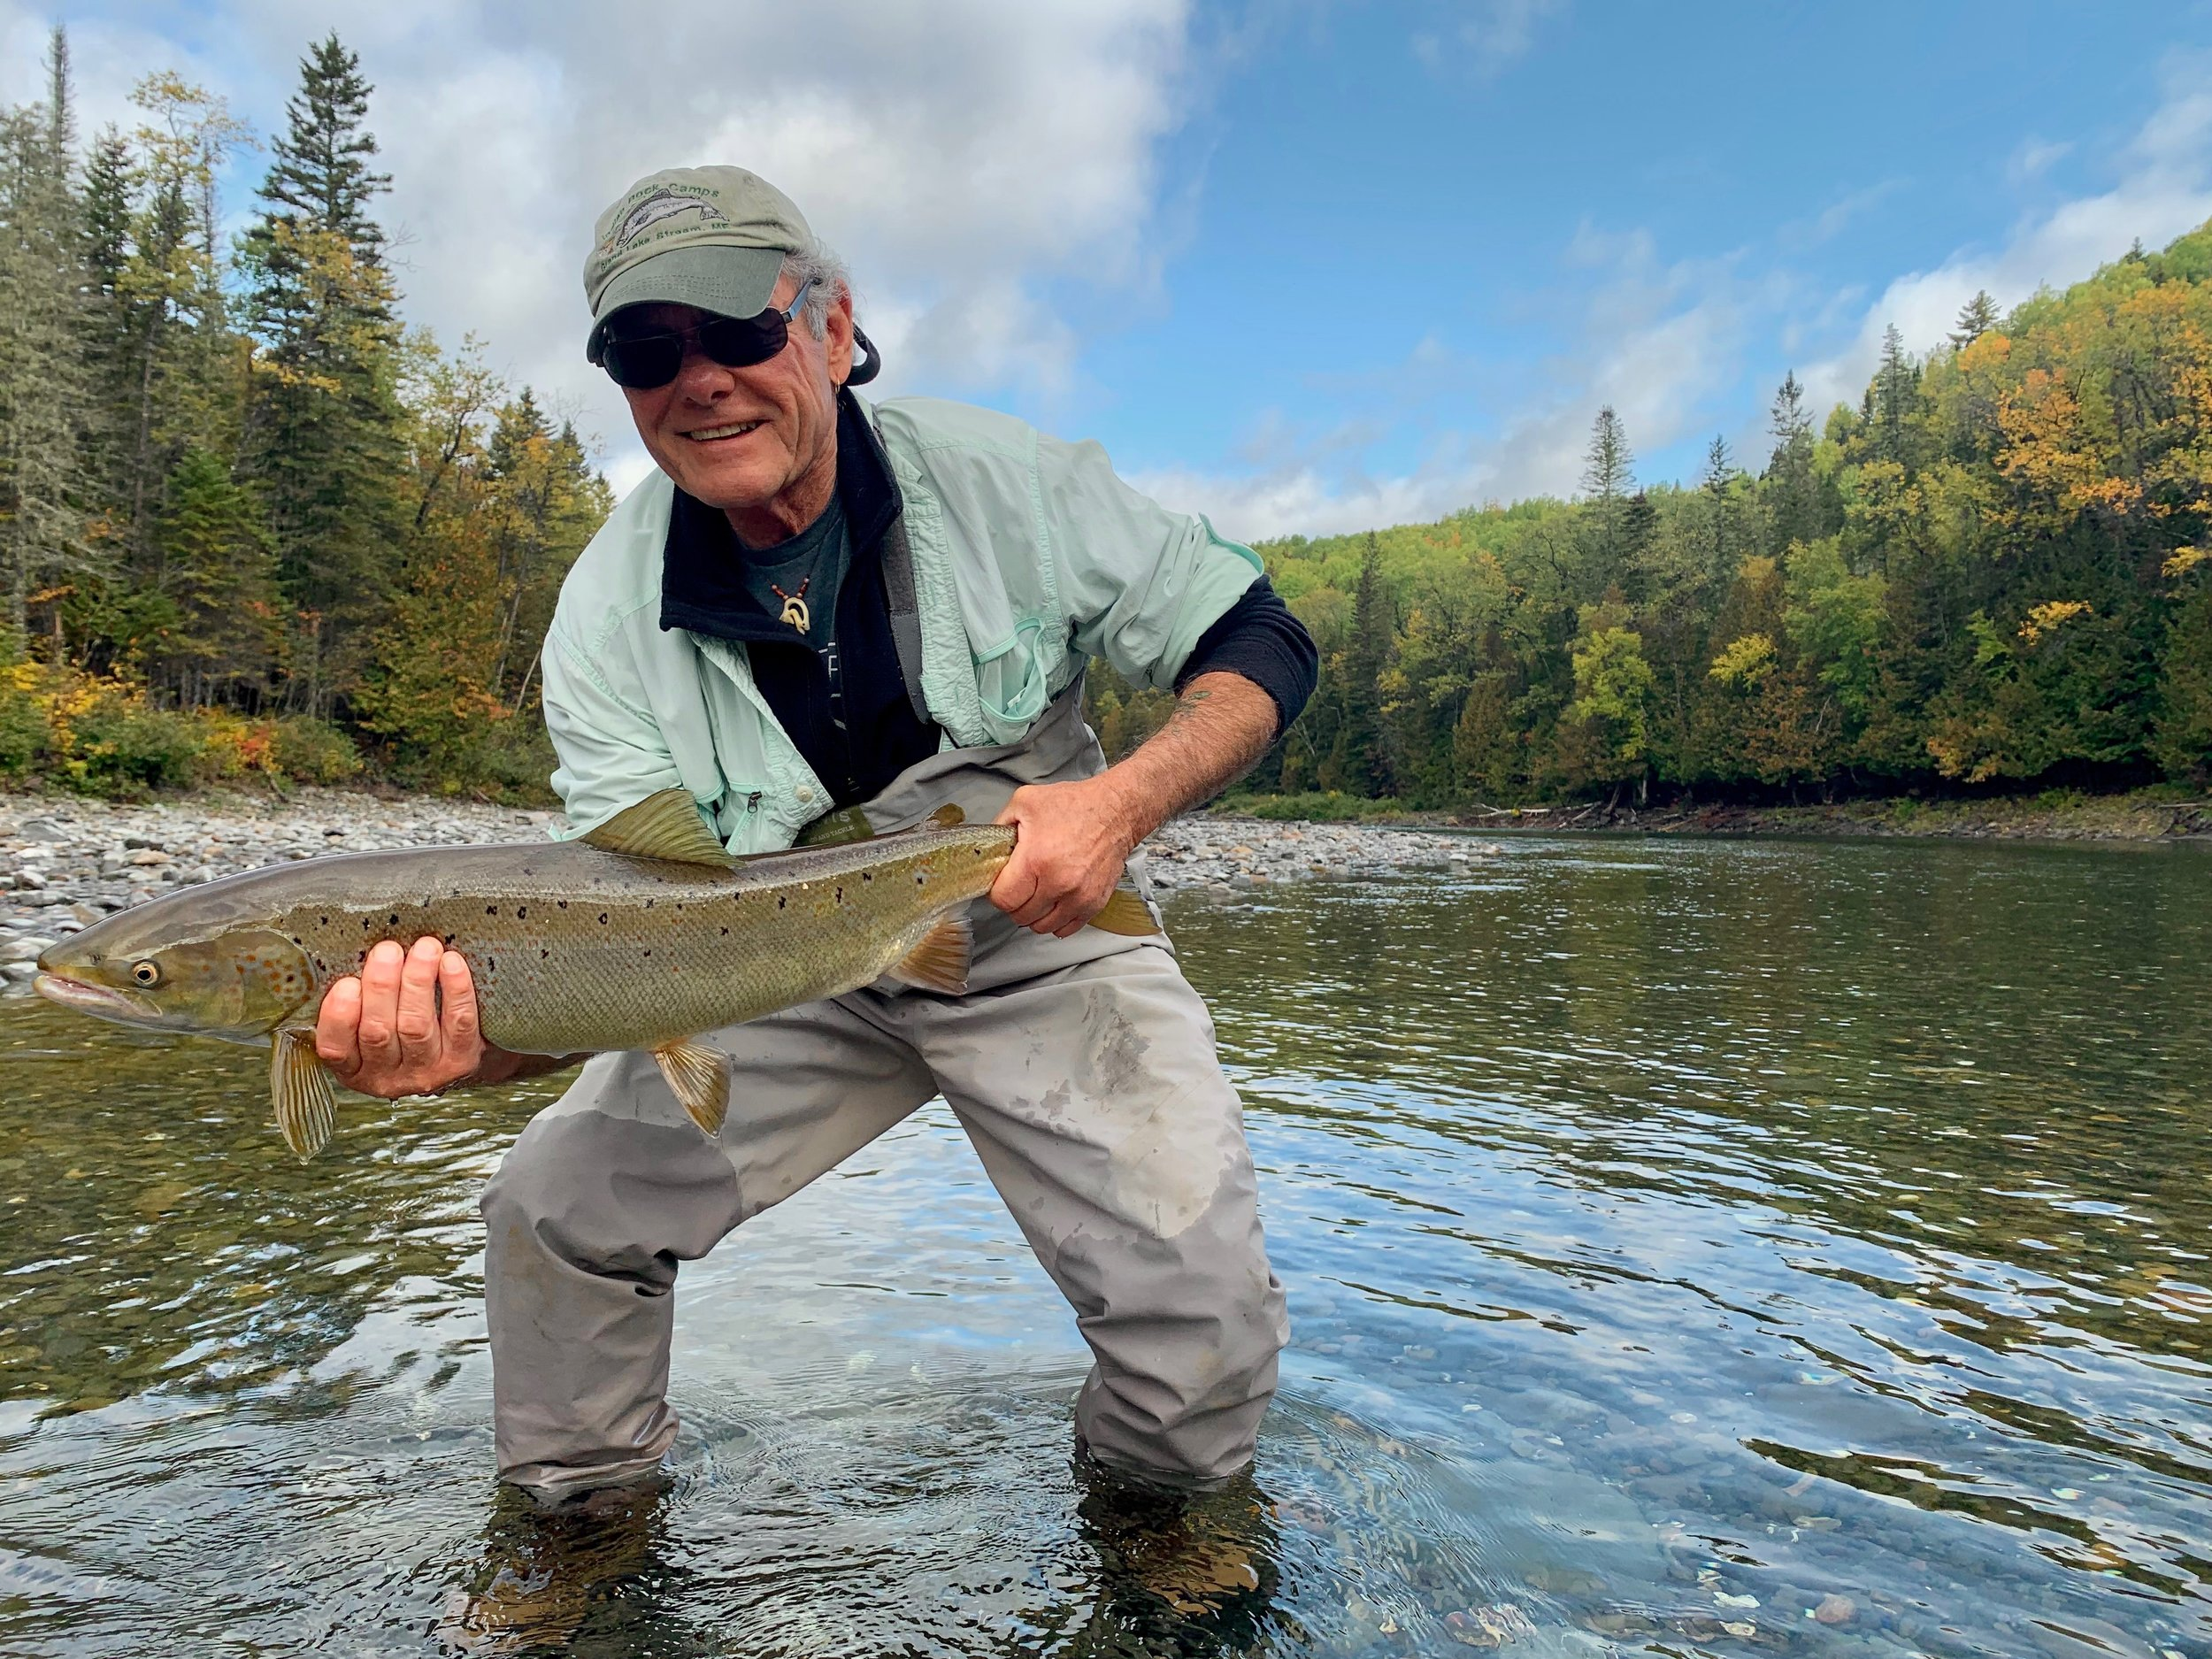 Our dear friend Joe Kievitt landed this beauty on the Bonaventure River! Congrats Joe!